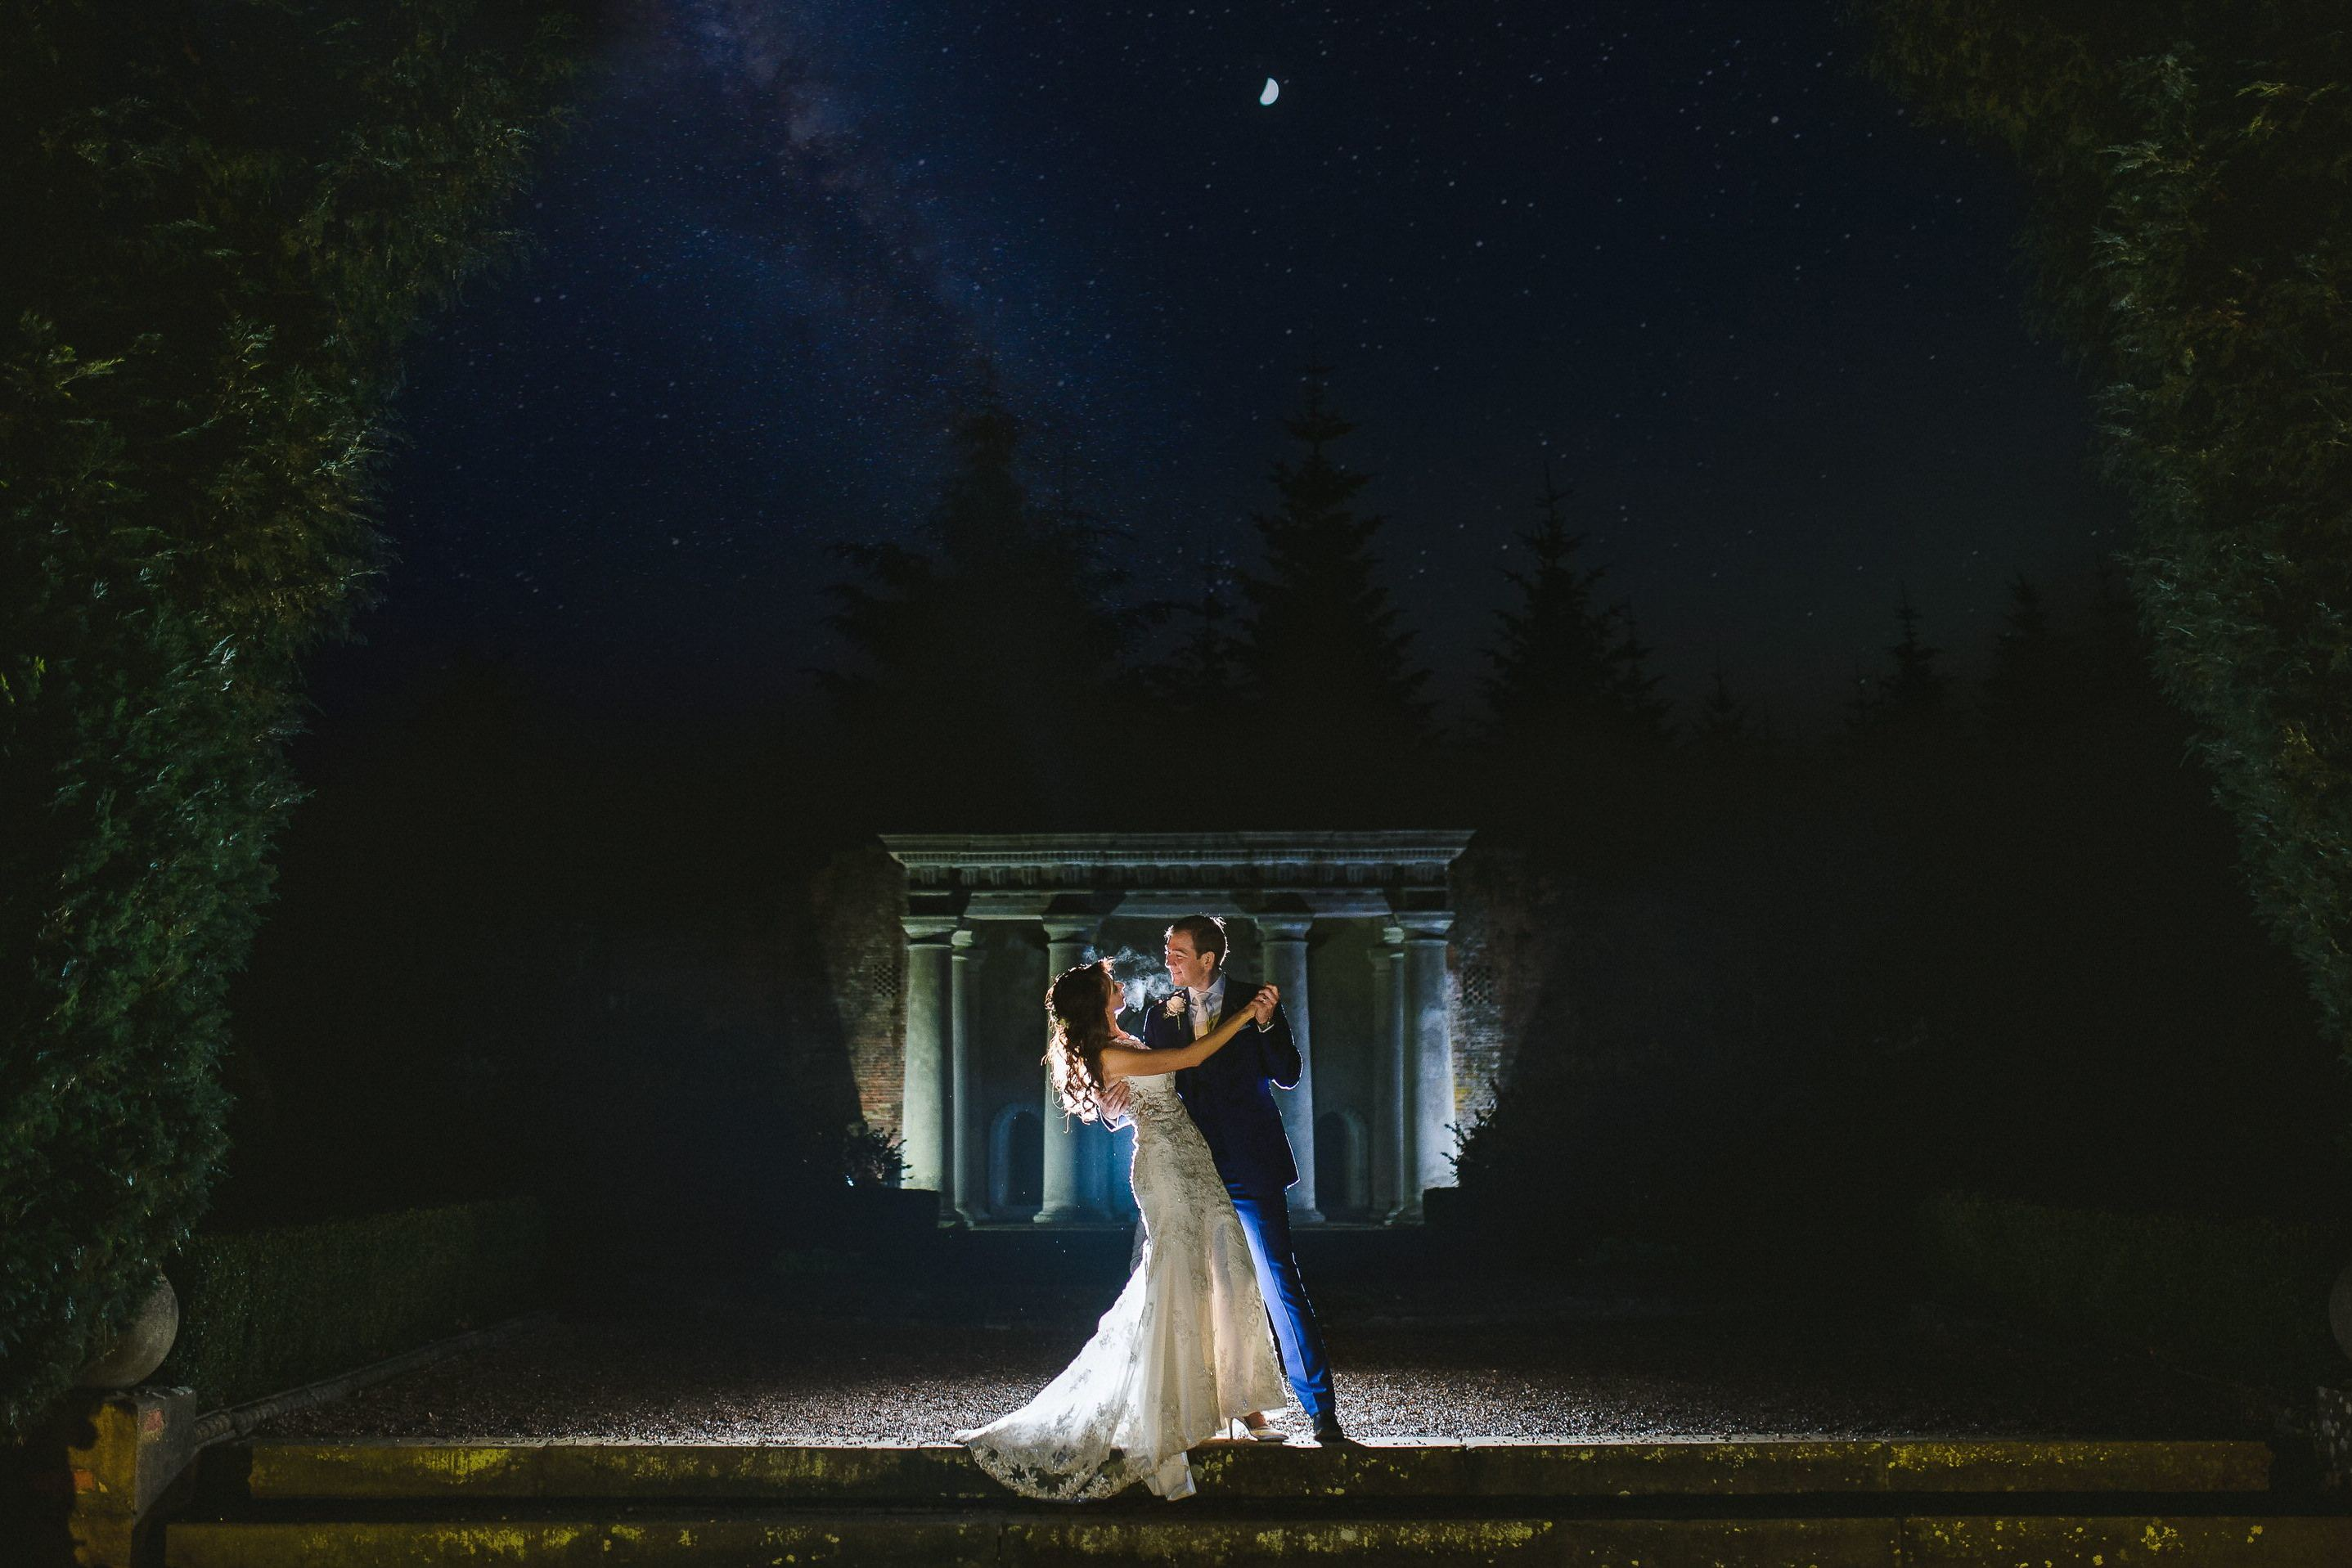 Ibiza Wedding Photographer, Cyprus wedding photographer, wotton house